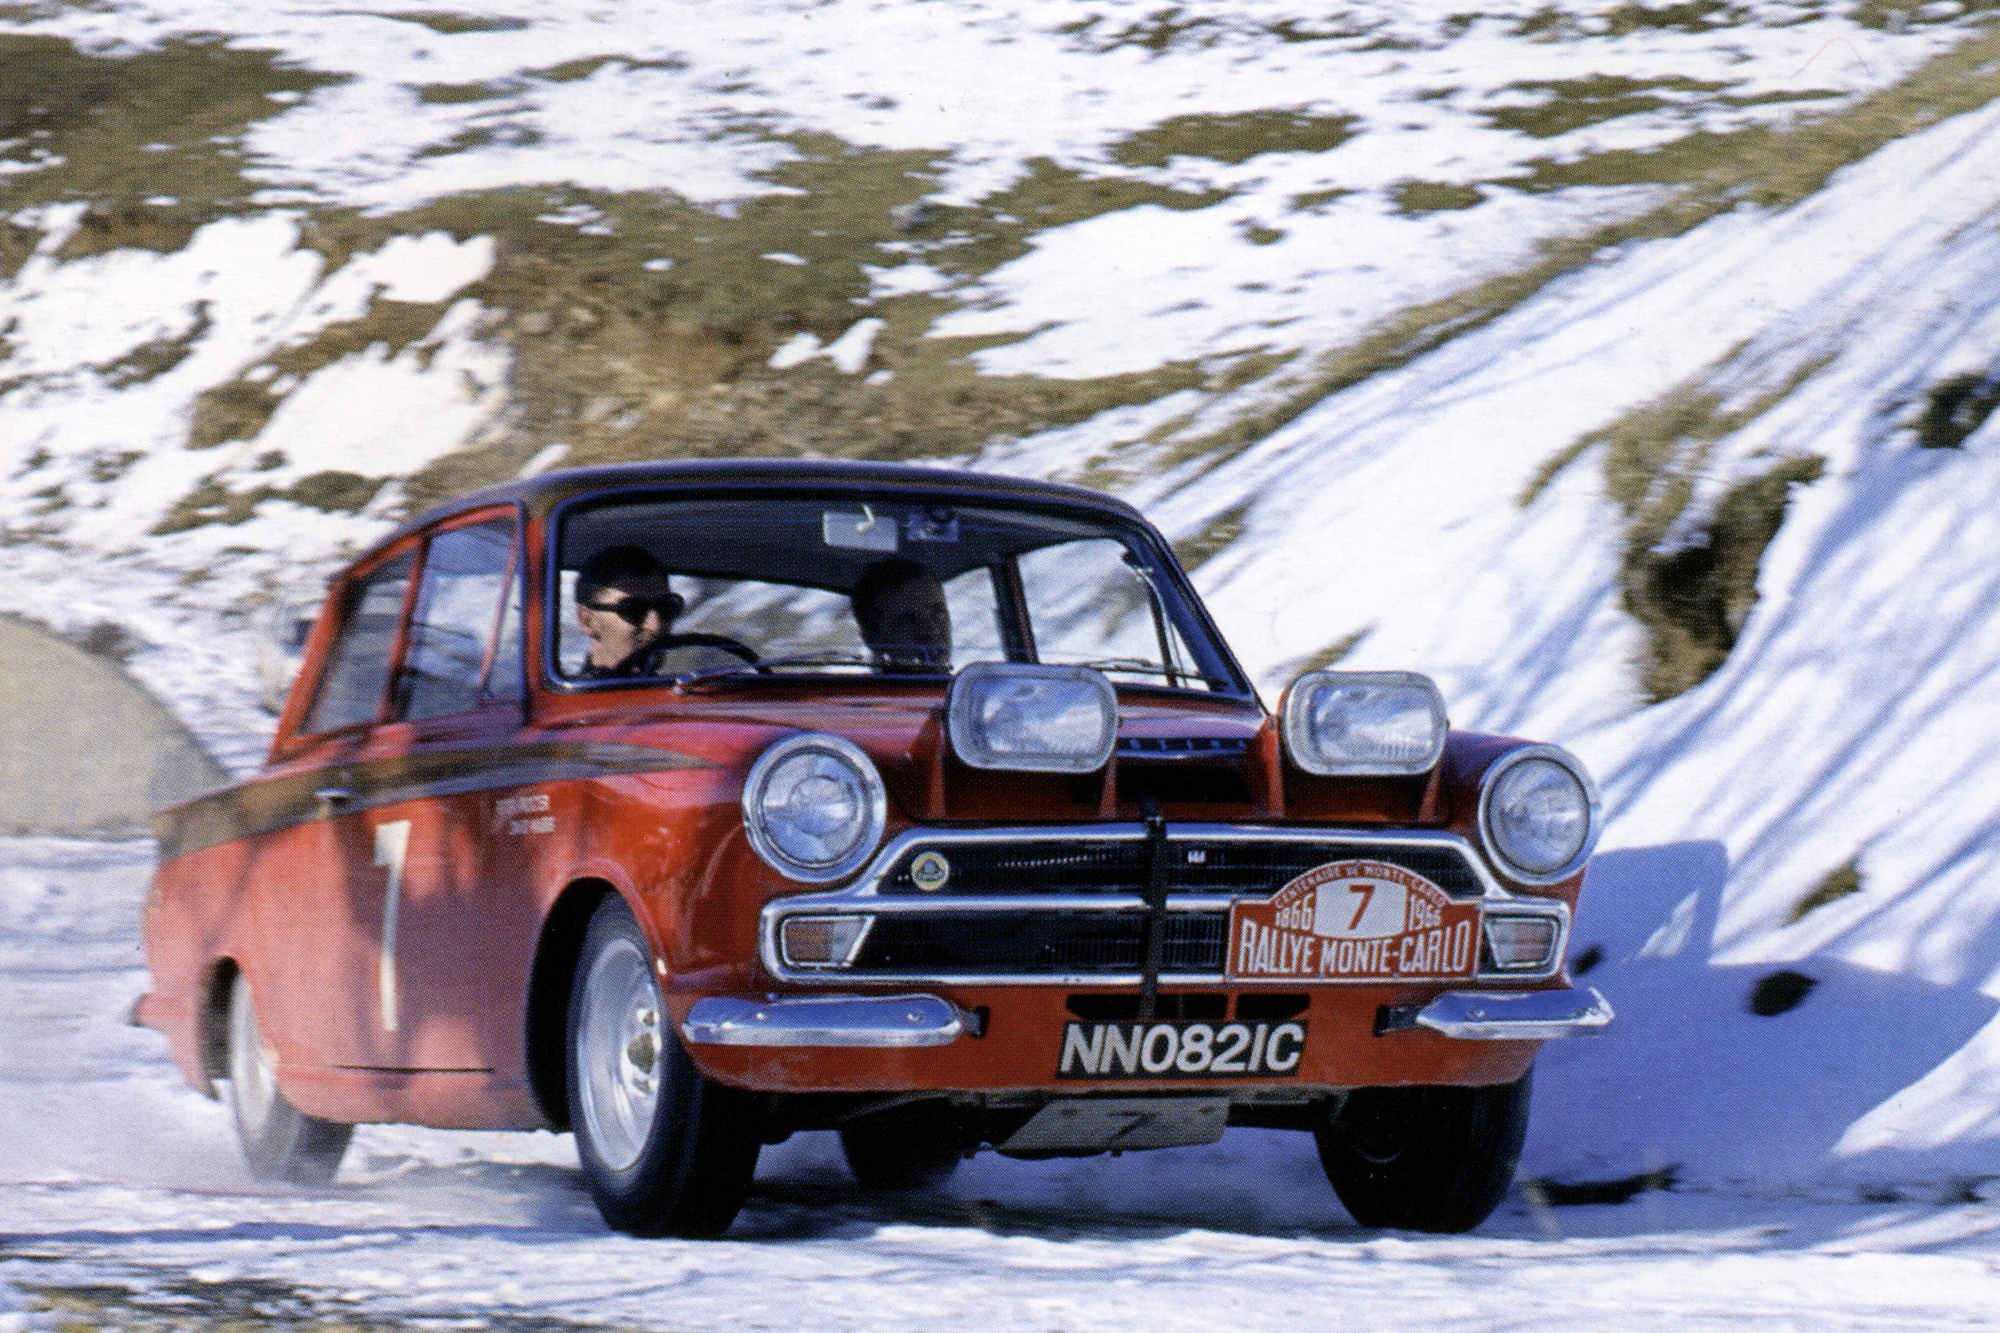 Lotus Cortinas were entered into the 100th Monte Carlo Rally along with campaigning for the European Touring Car Championship, winning four of the rounds and finishing second overall.